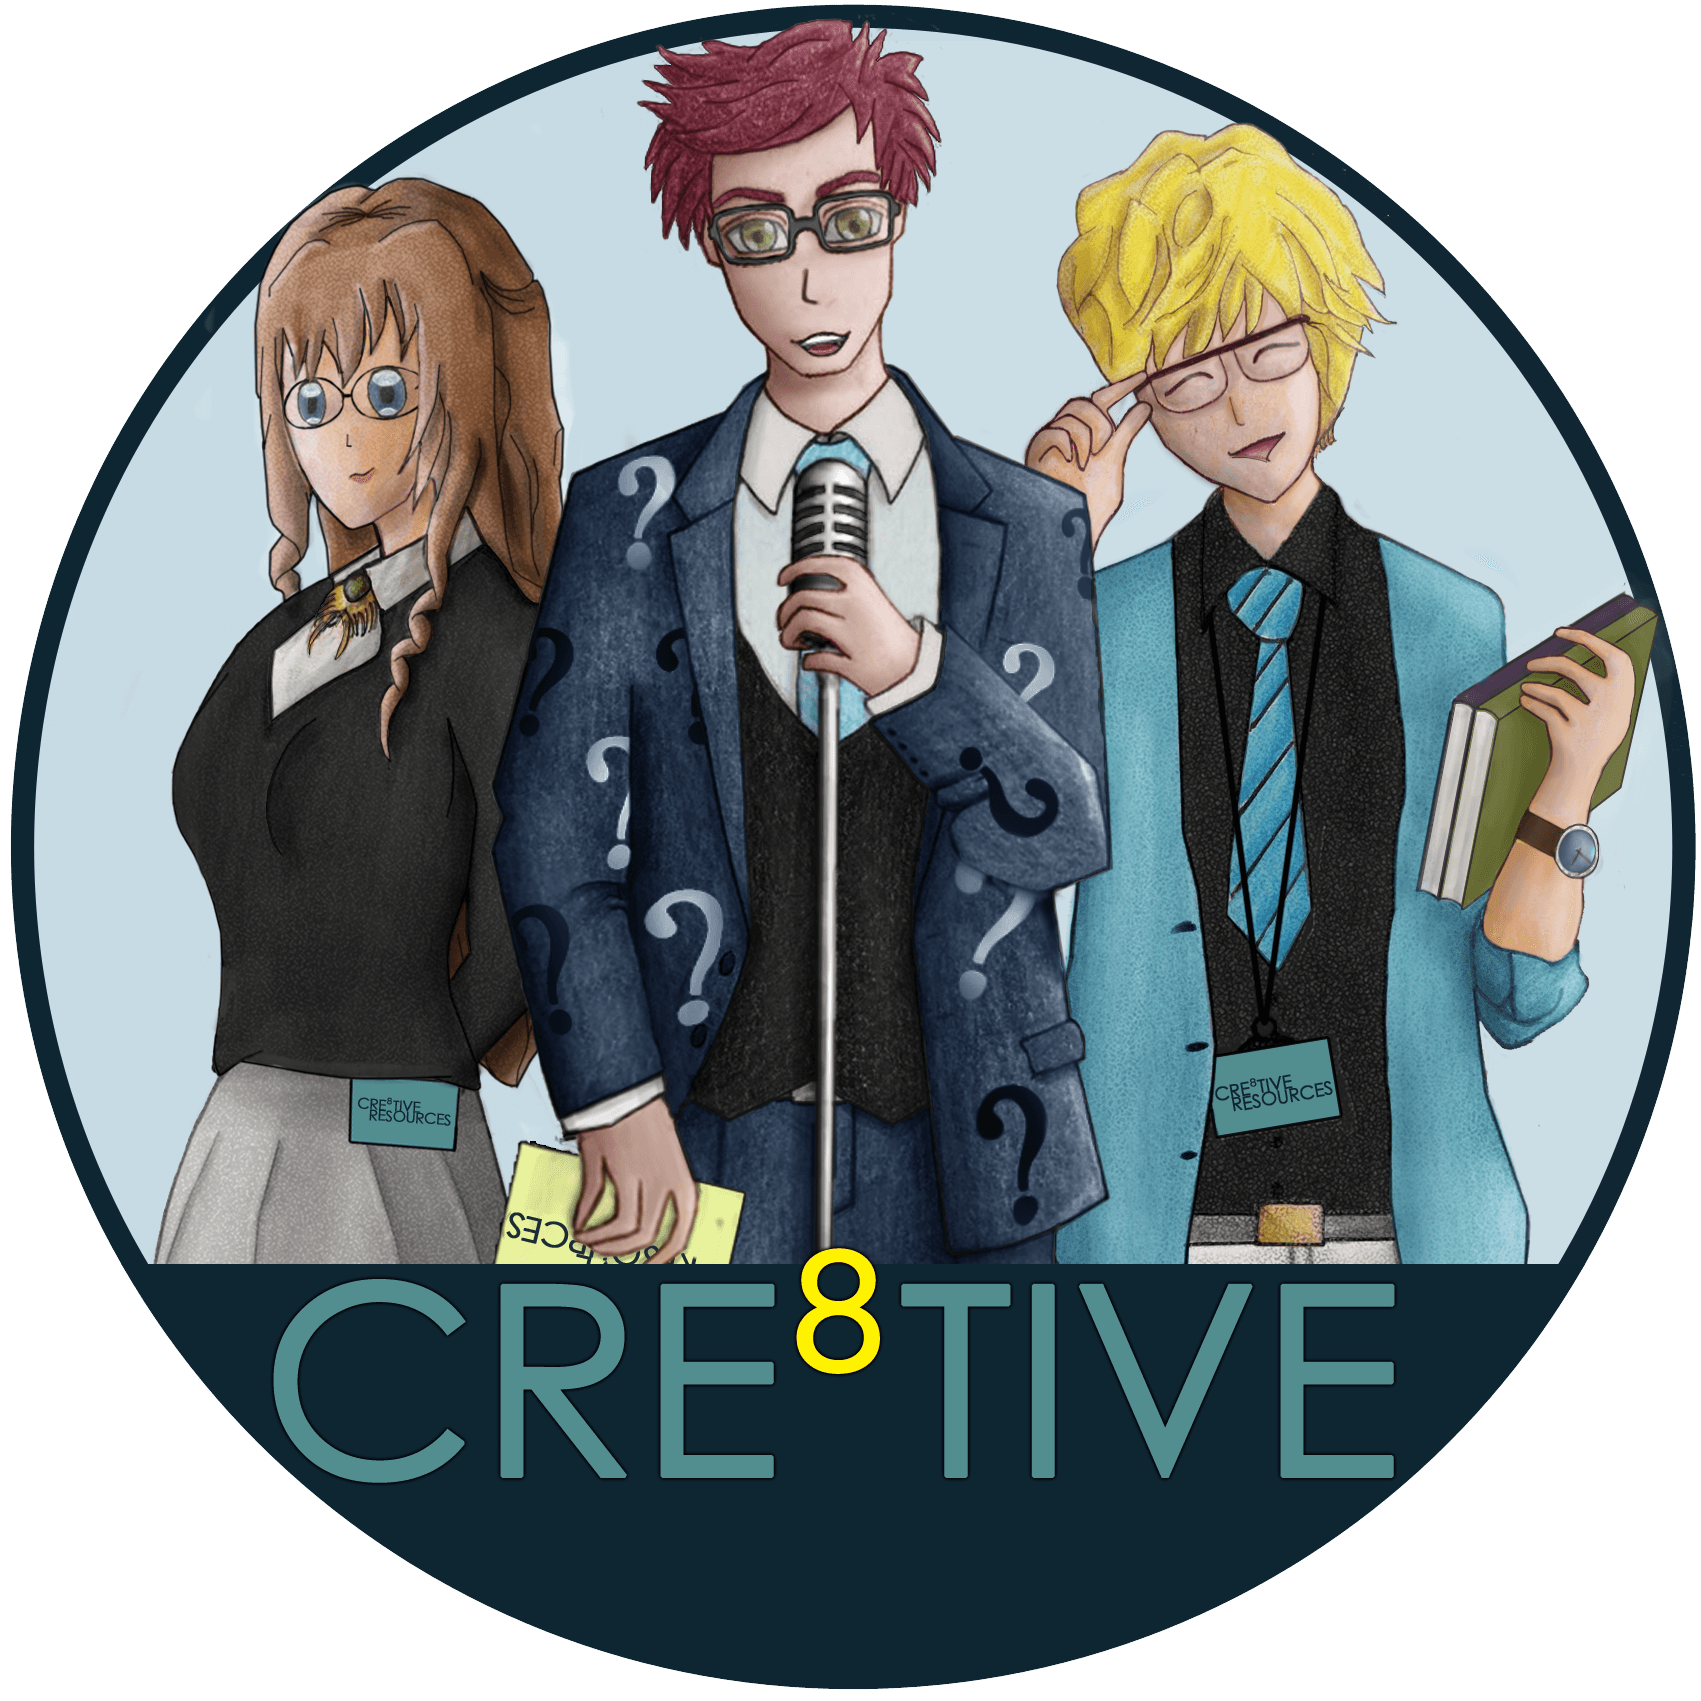 cre8tive resources